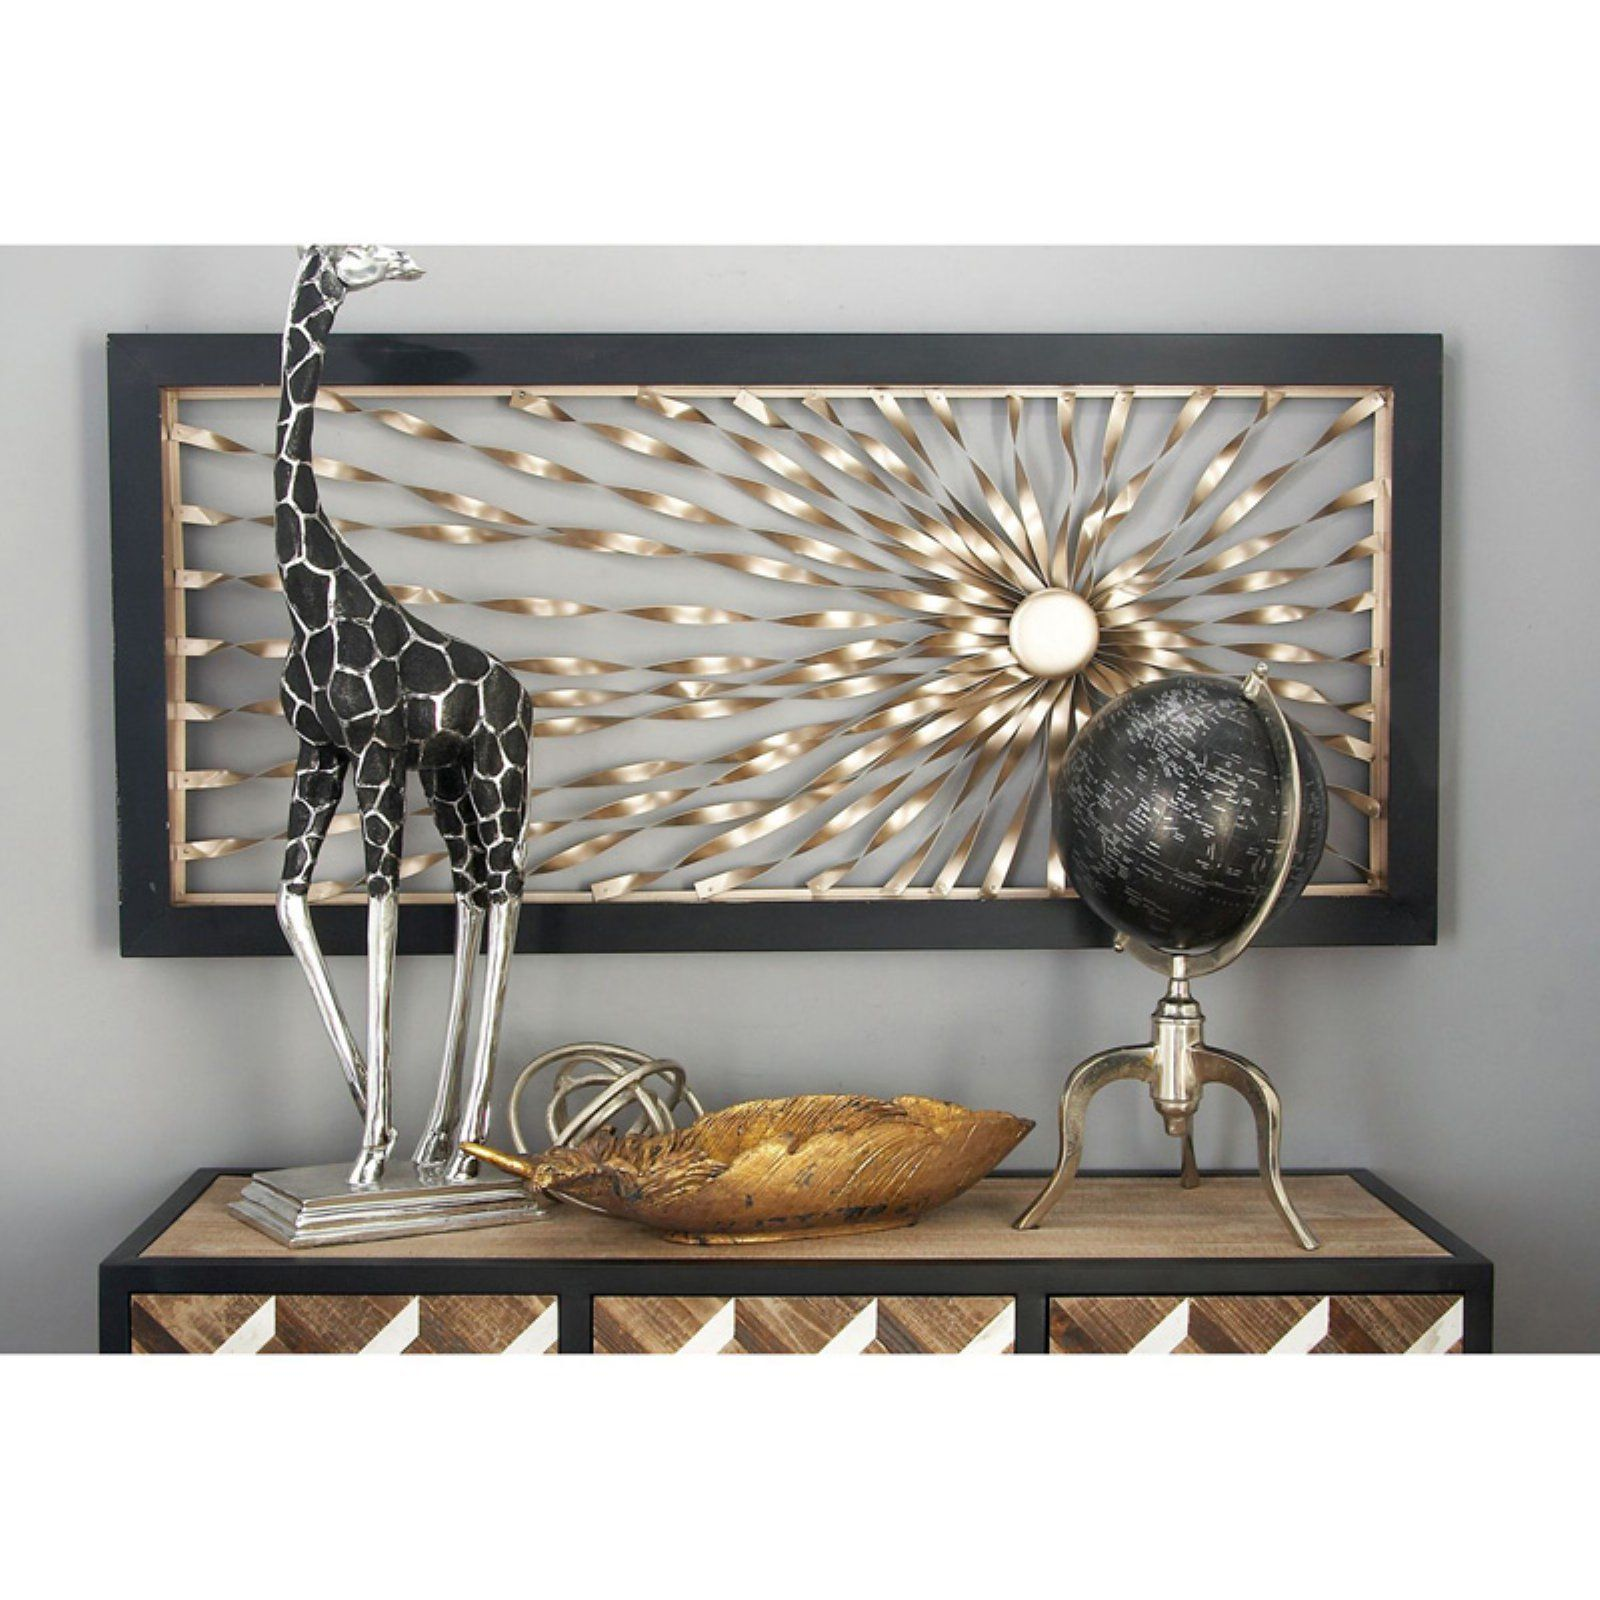 Decmode Framed Metal Ribbon Wall Sculpture Products In